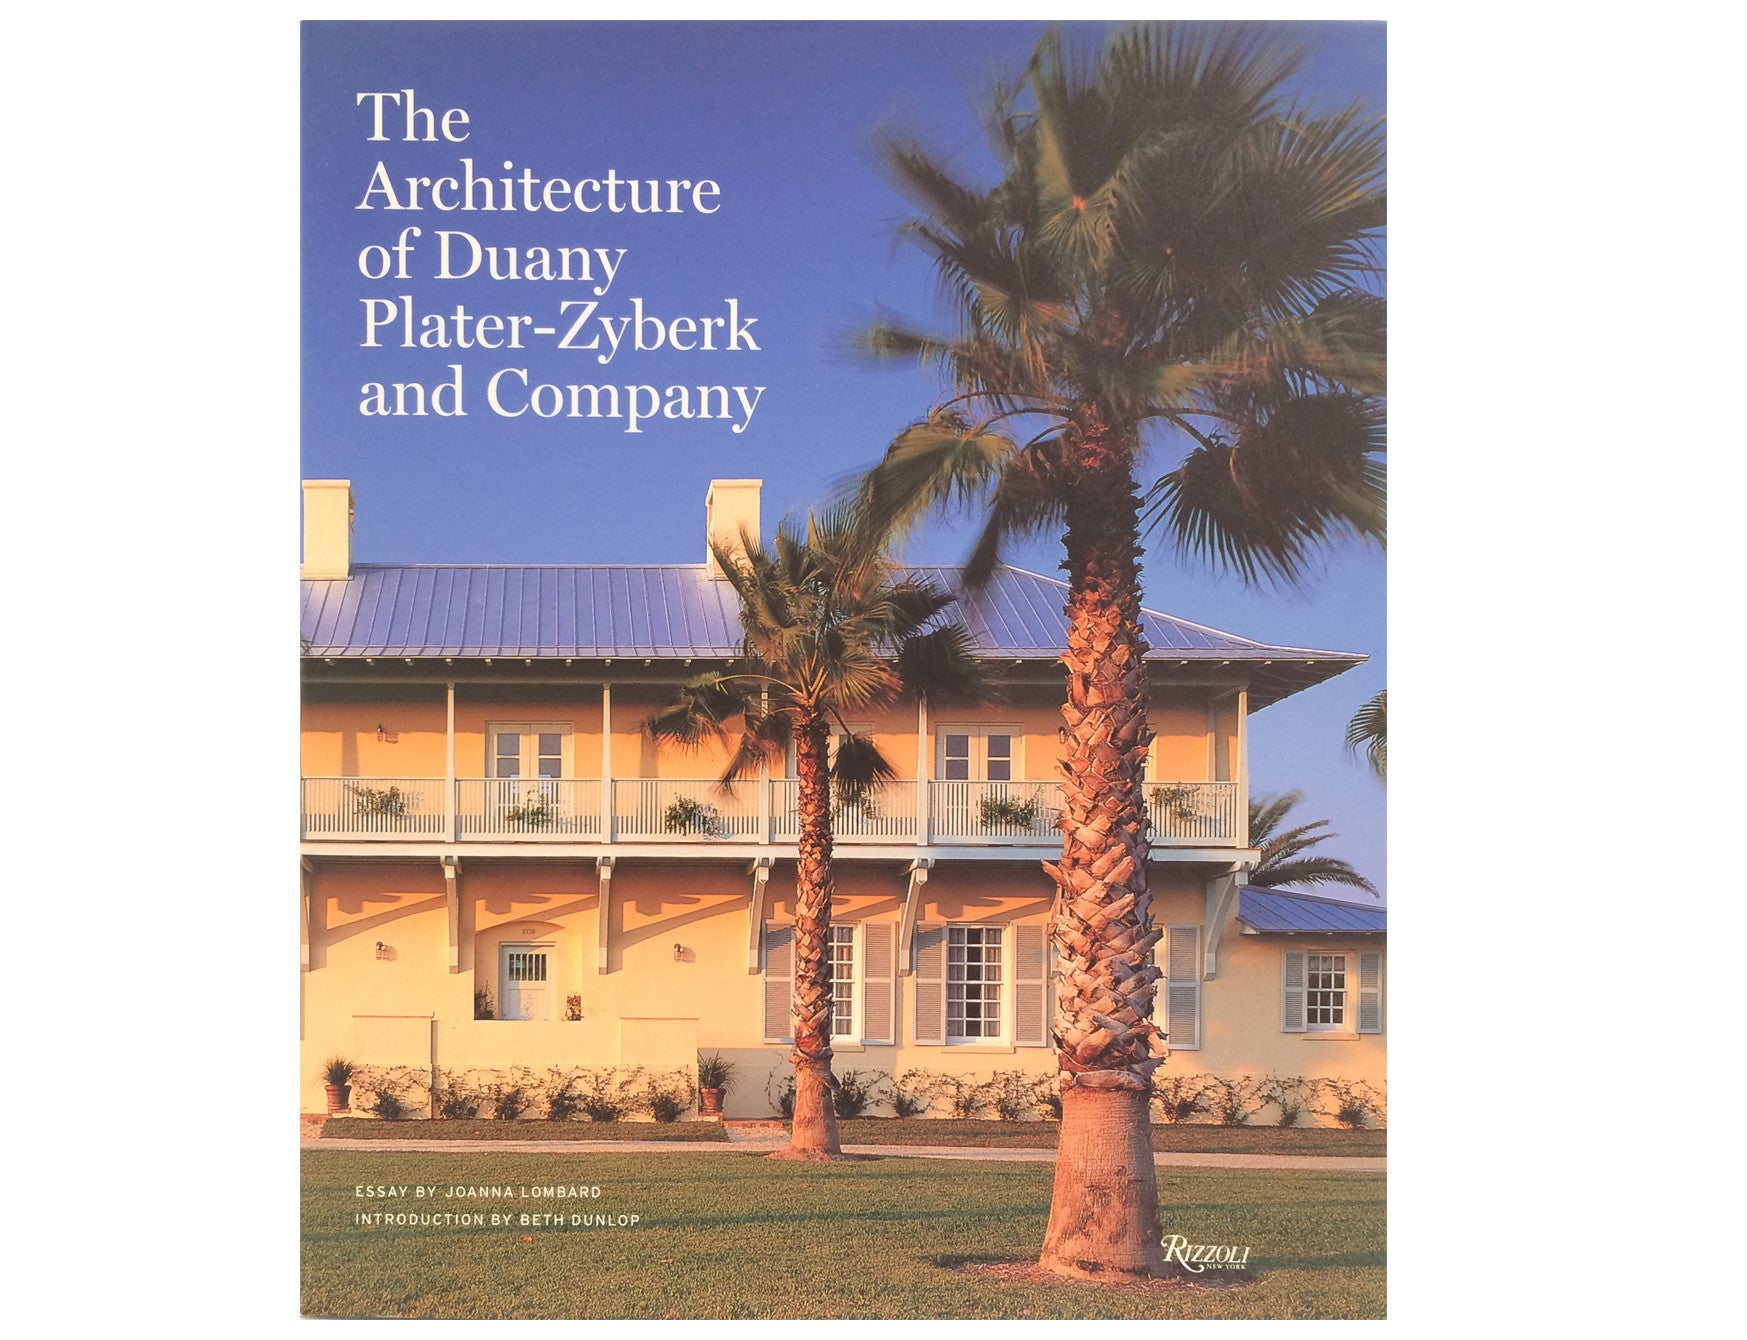 The Architecture of Duany Plater-Zyberk and Company